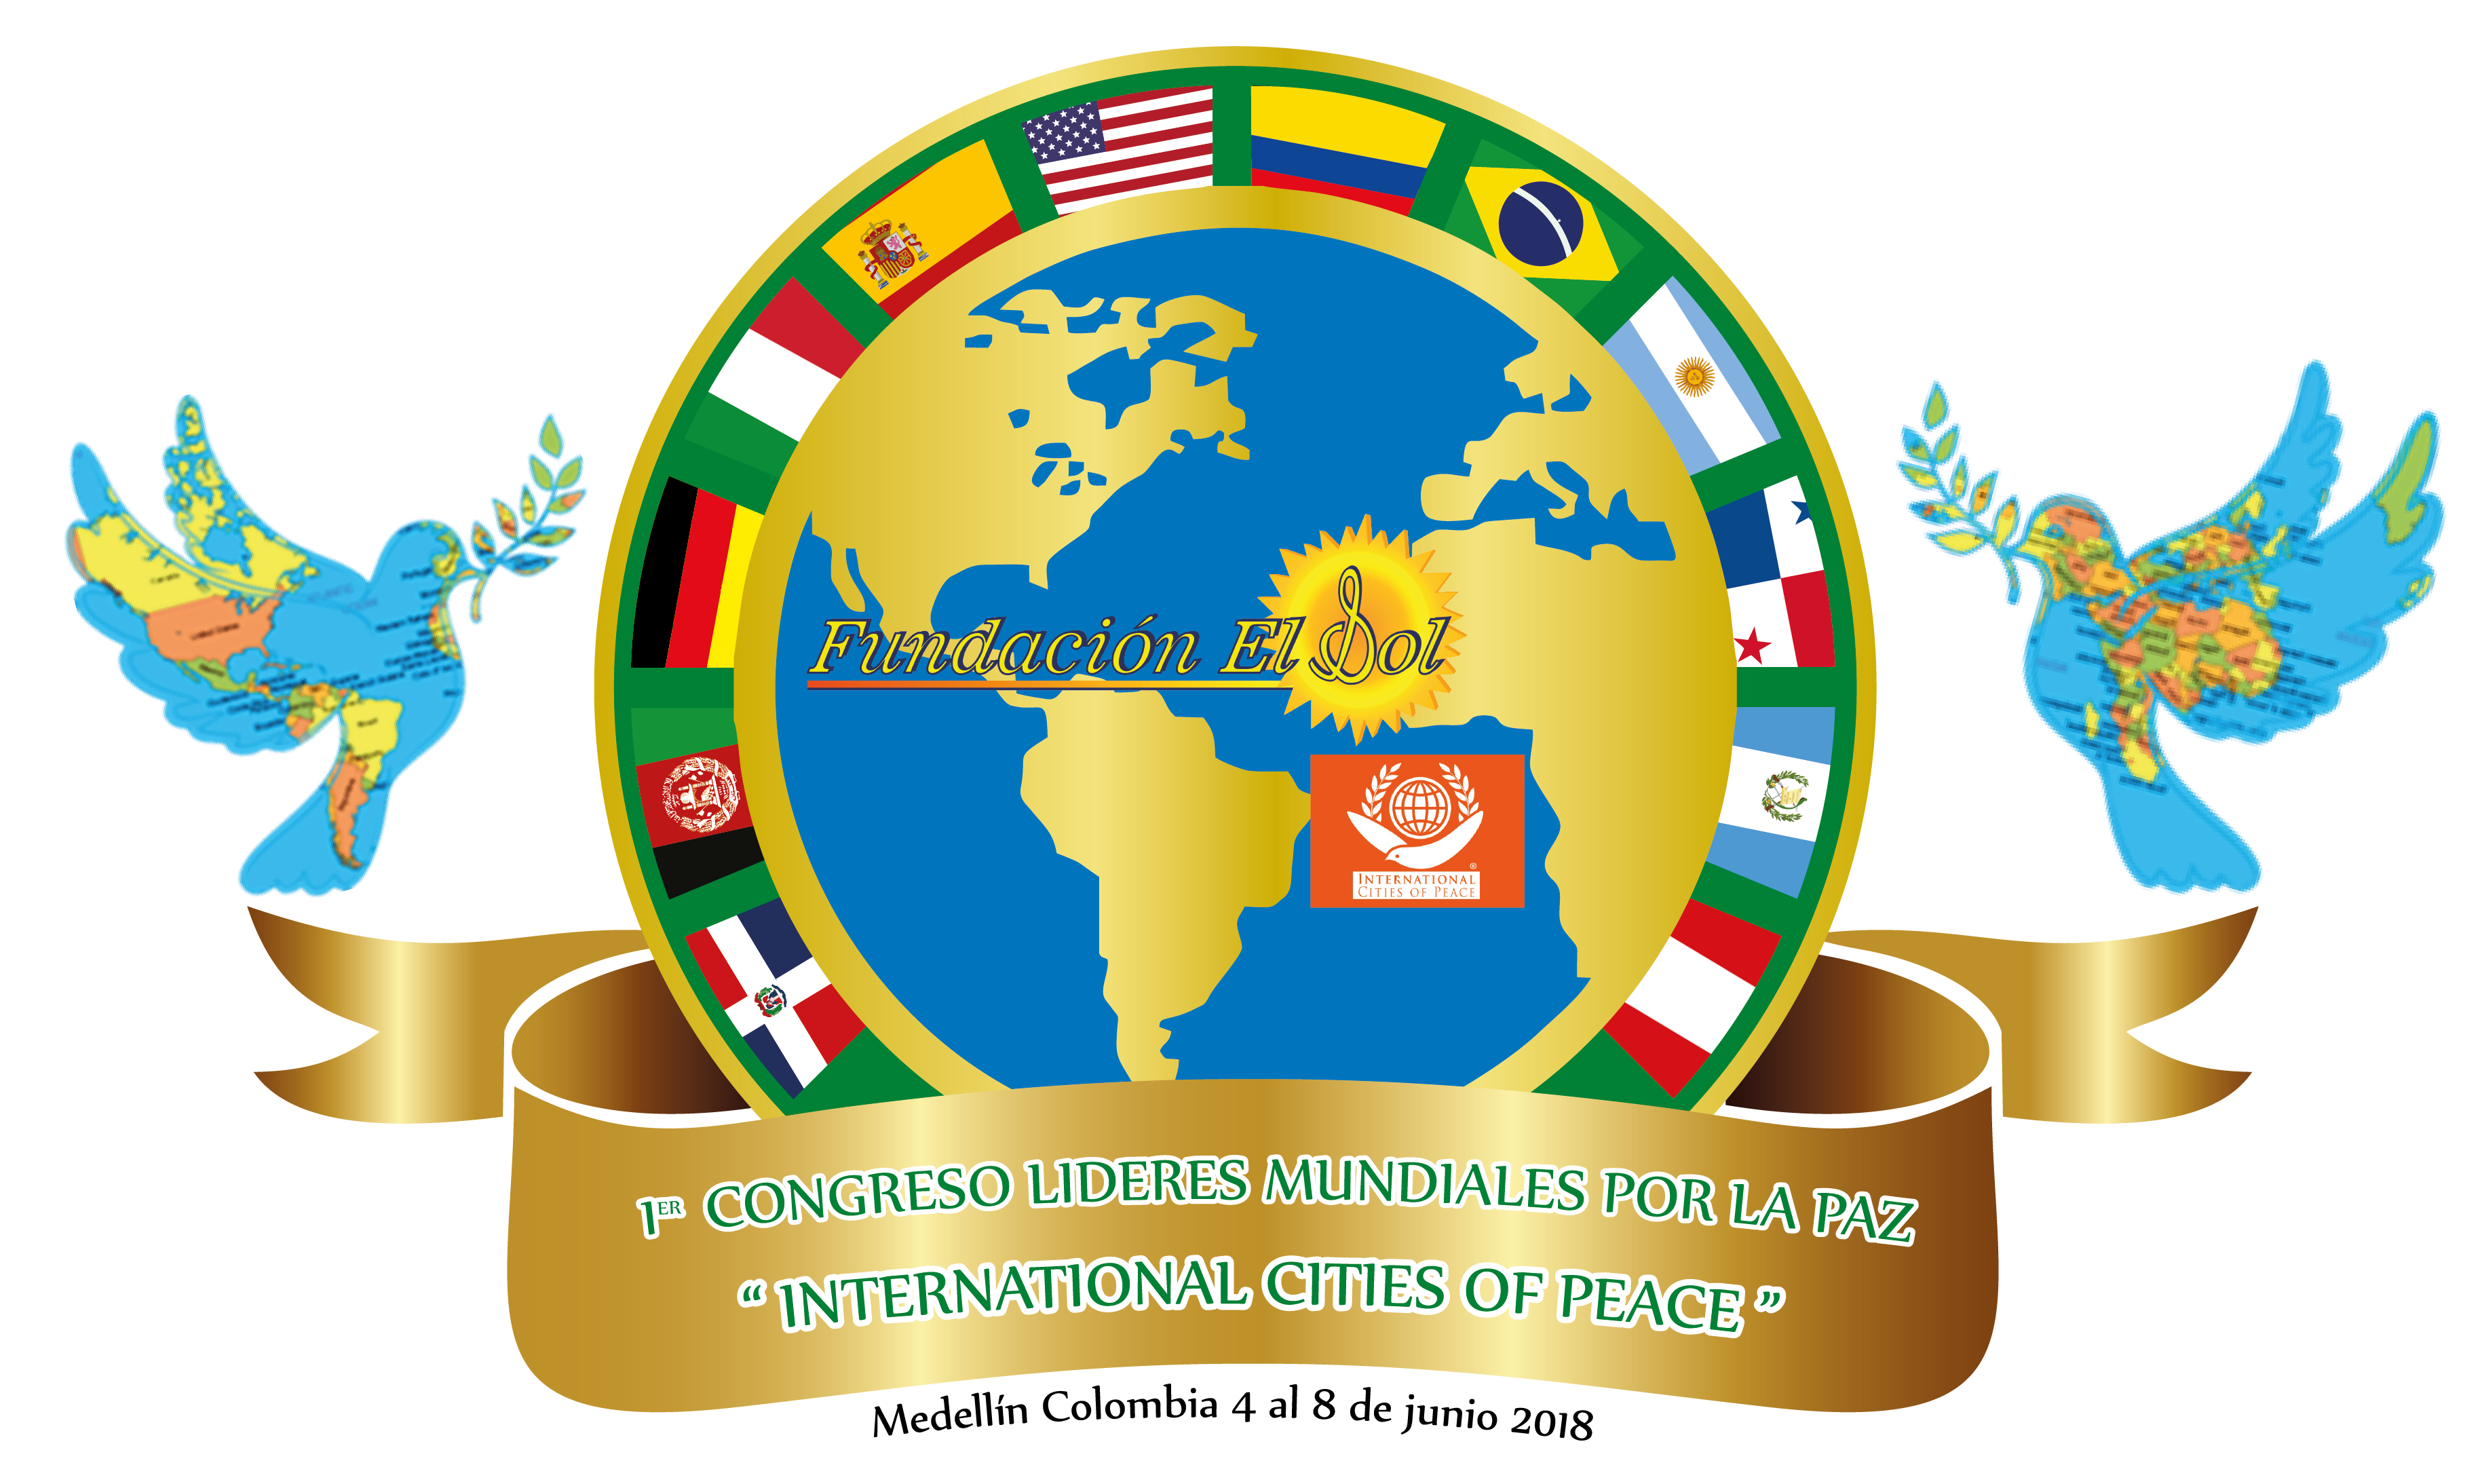 2018 clipart may 2018. International cities of peace